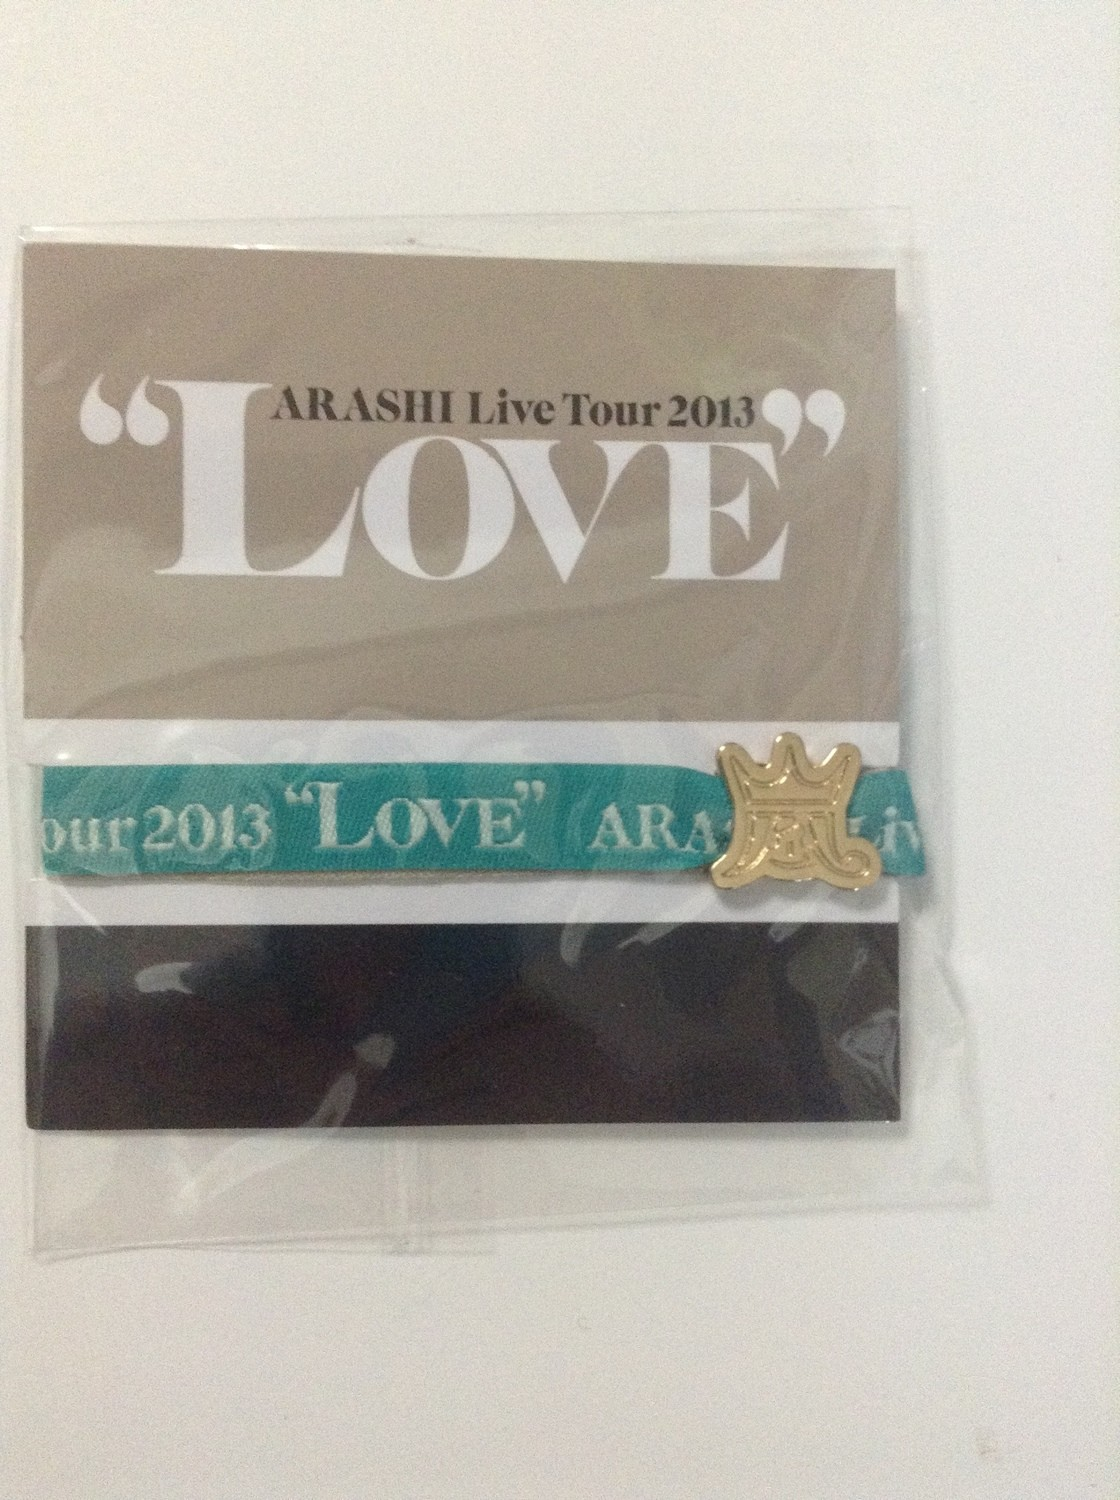 Arashi LOVE Tour Venue Limited Ribbon Bracelet Green